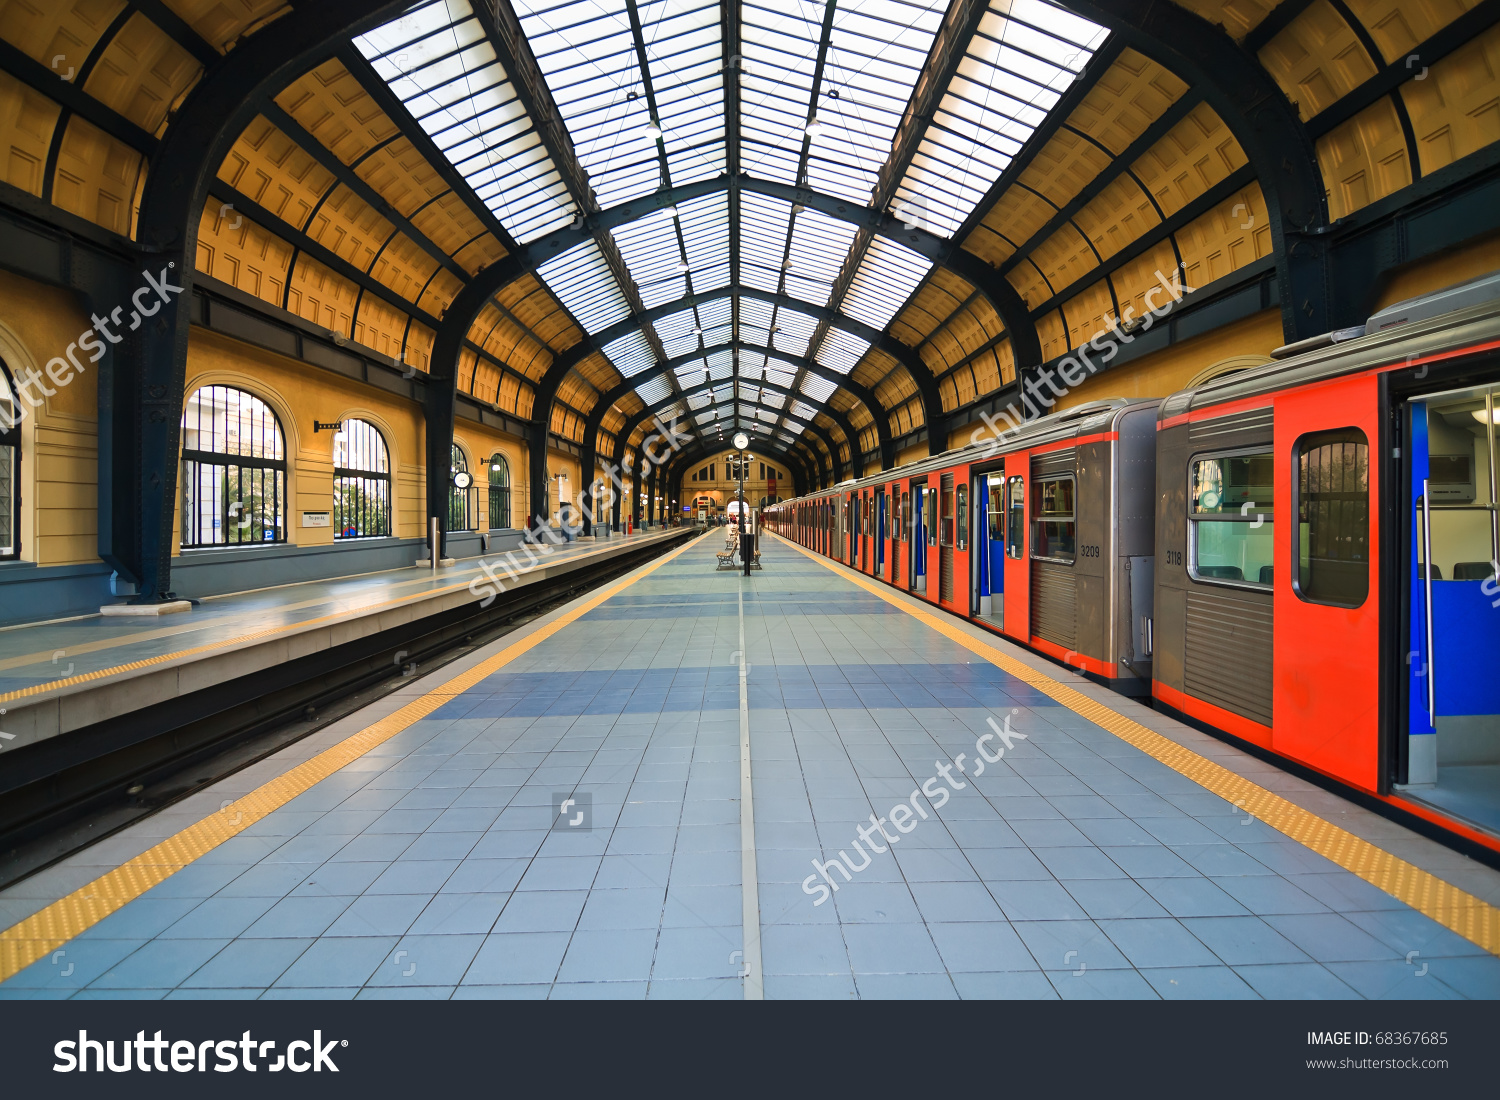 Athens Metro Station In Greece Stock Photo 68367685 : Shutterstock.